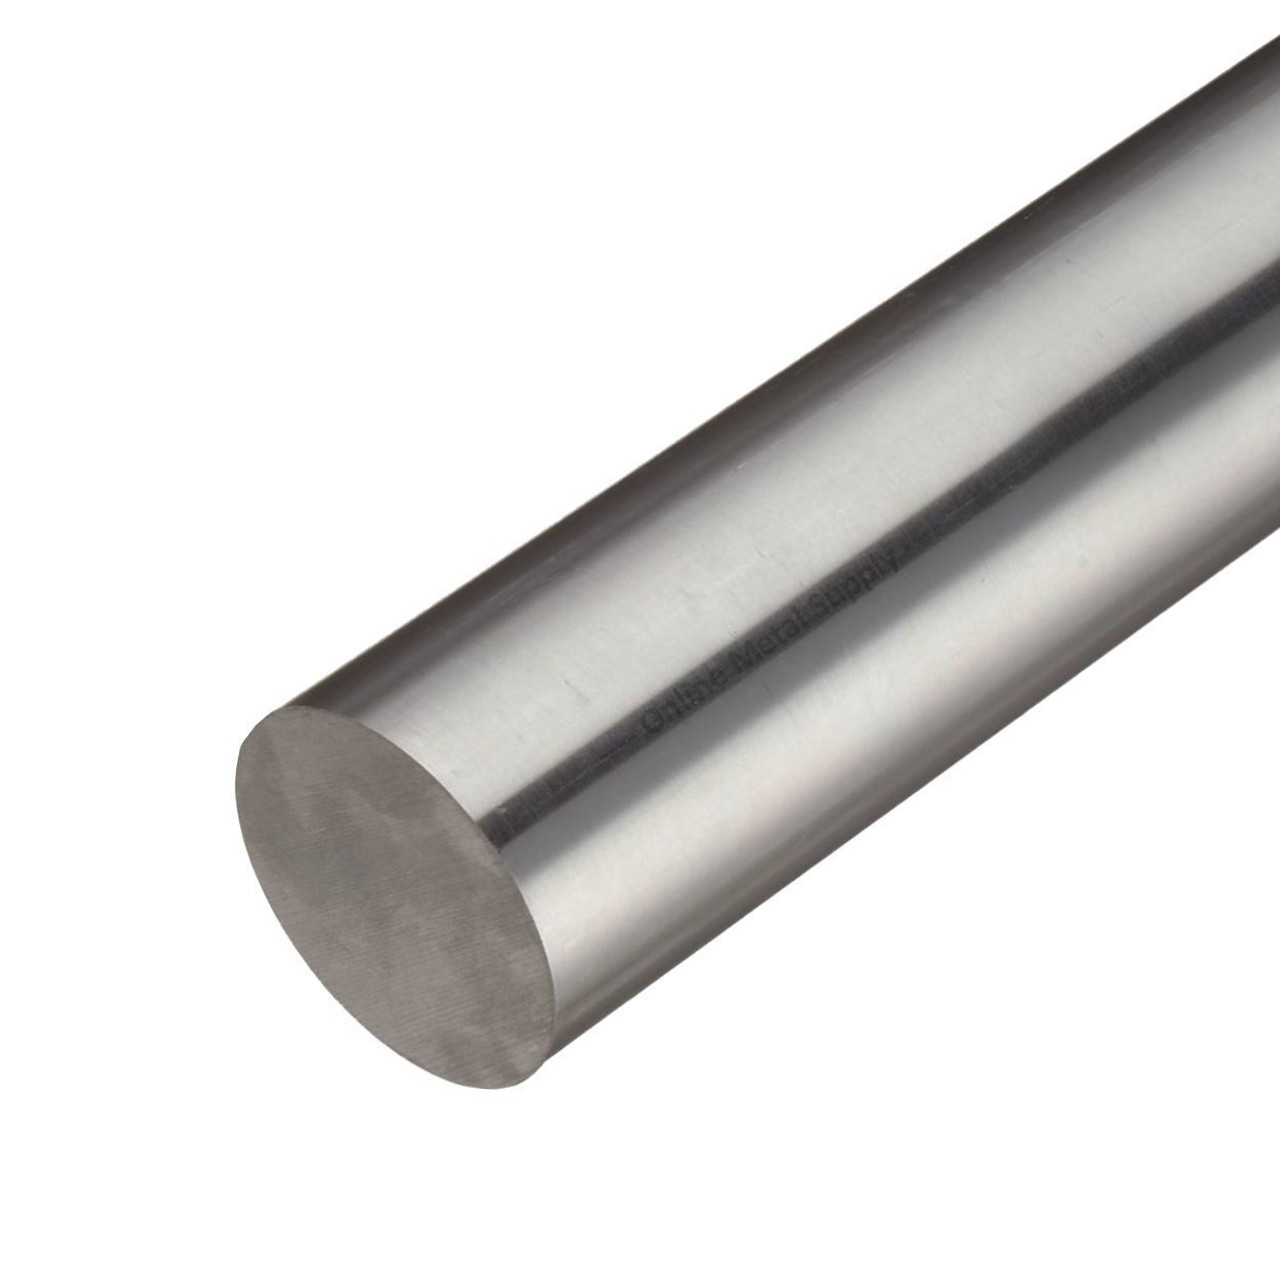 17-4 Stainless Steel Round Rod, 2.750 (2-3/4 inch) x 12 inches